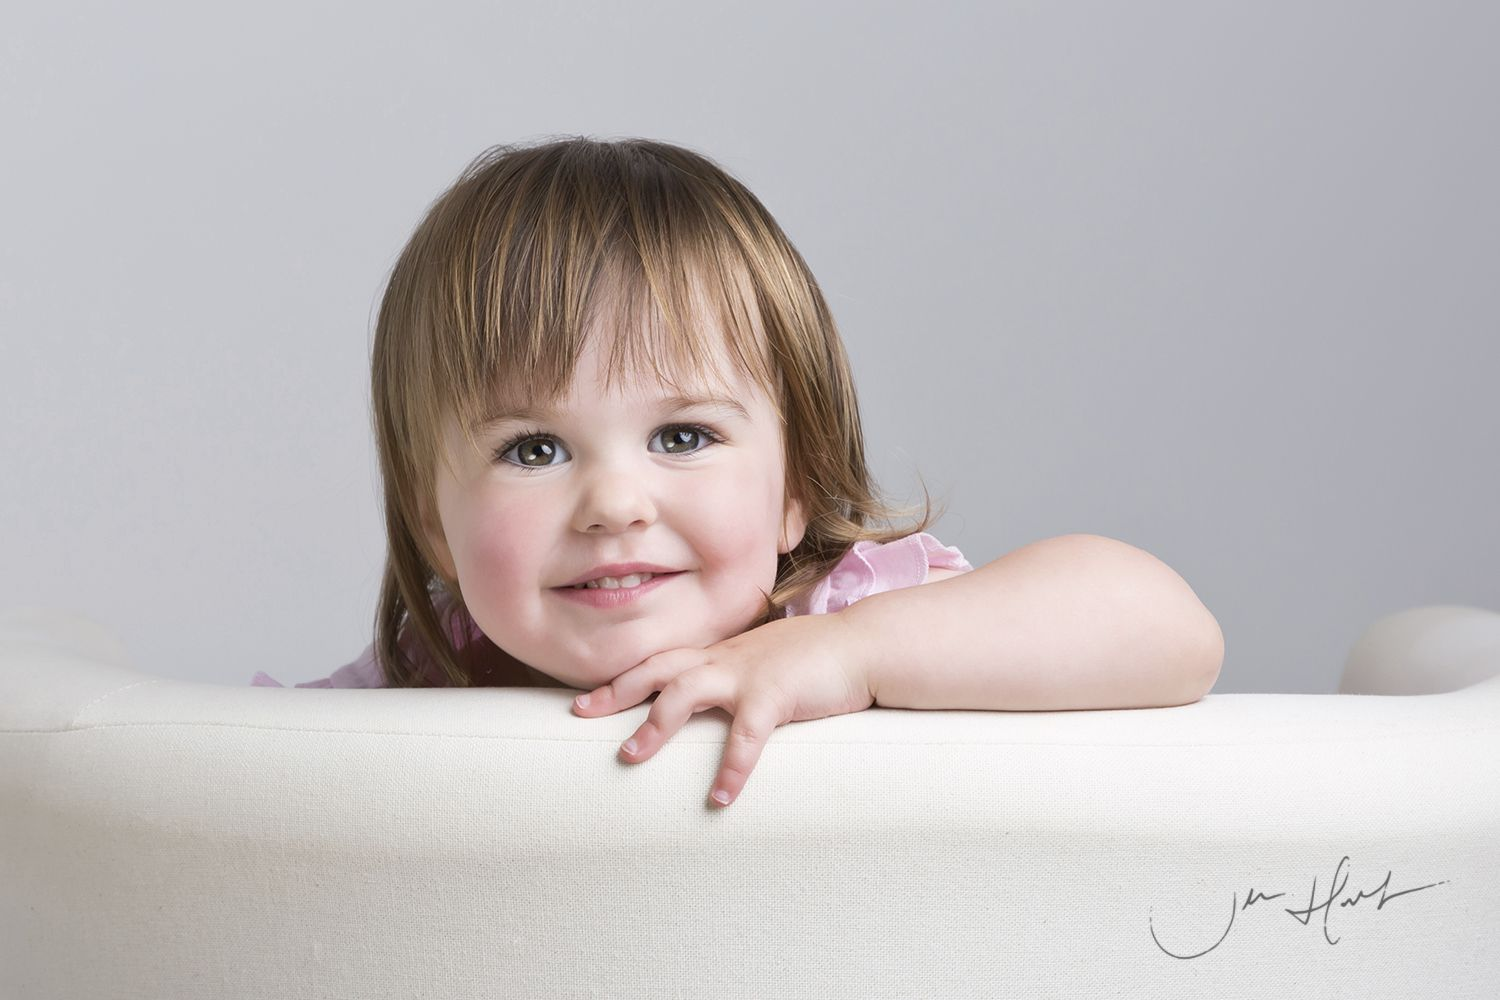 Children-Studio-Photography-Middlesbrough-Jen-Hart-Lucy- 31August18_029